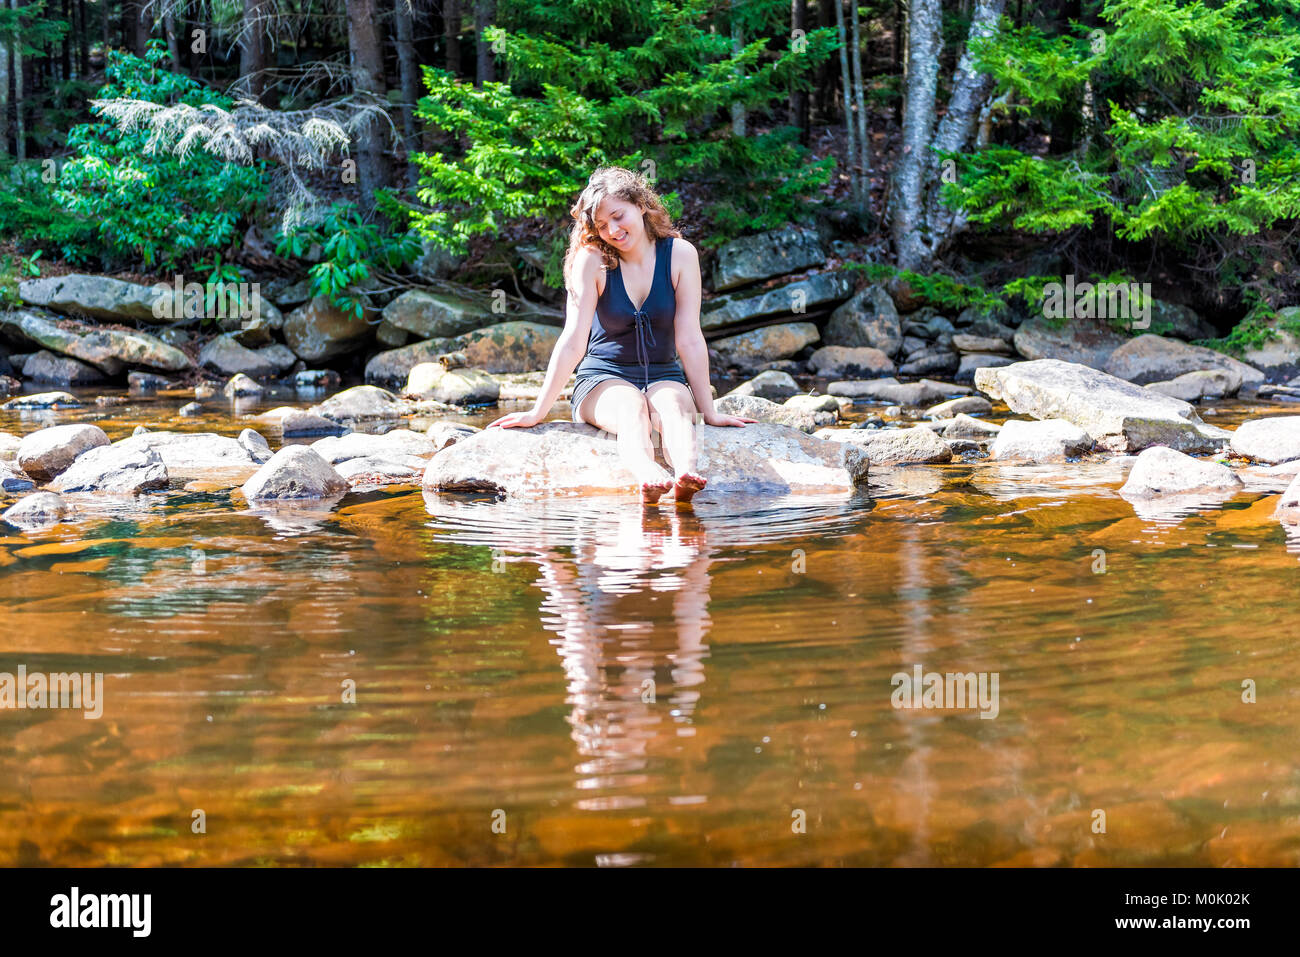 Young happy smiling woman enjoying nature on peaceful, calm Red Creek river in Dolly Sods, West Virginia during - Stock Image